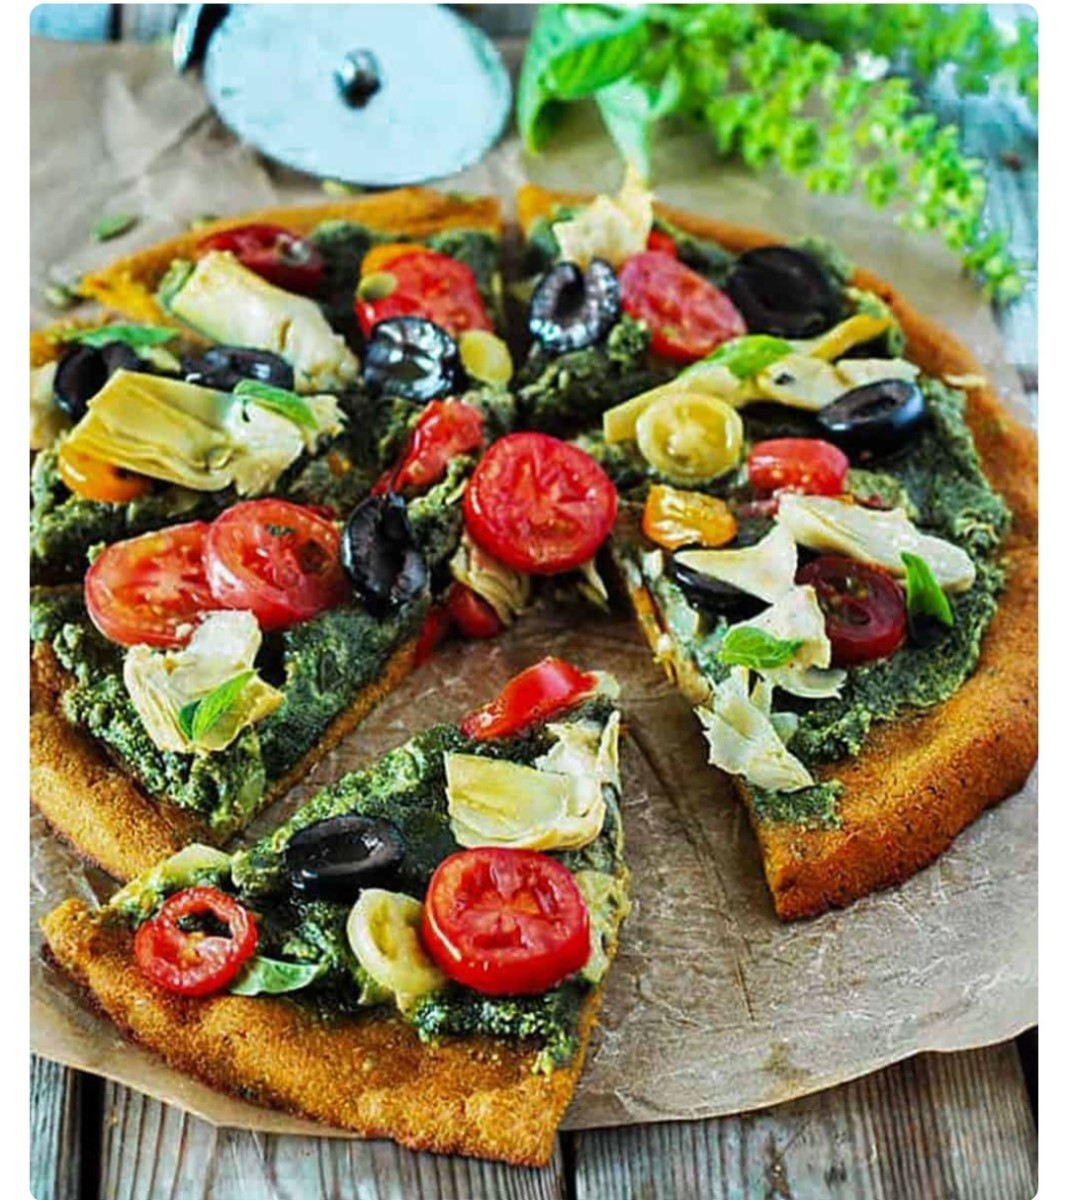 Find the recipe for this healthy plant-based, gluten-free pumpkin crust pizza at Michelle Blackwood's Healthier Steps site.